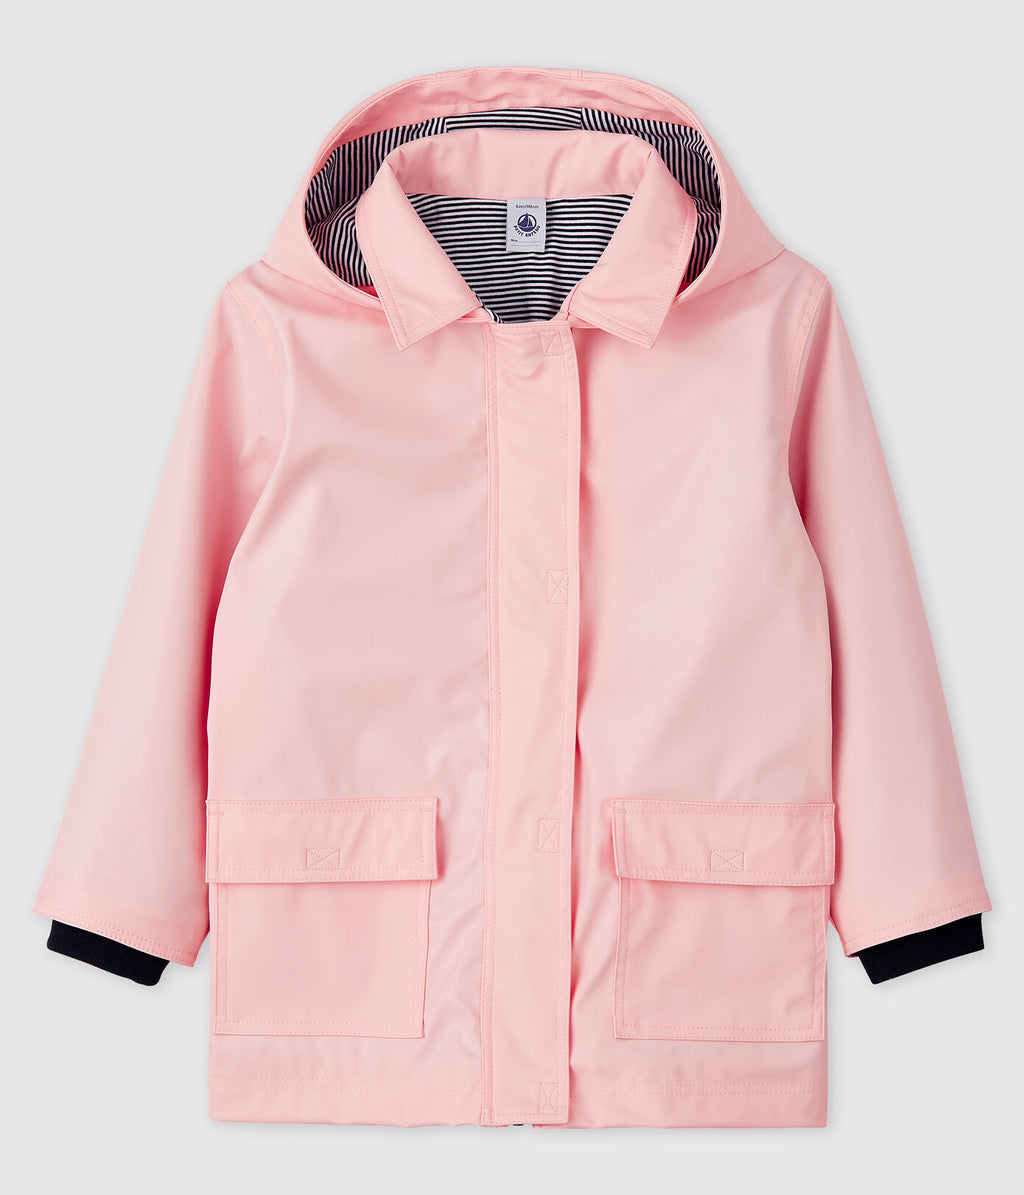 Petit Bateau Lelsa Baby Hooded Rain Jacket in Pink